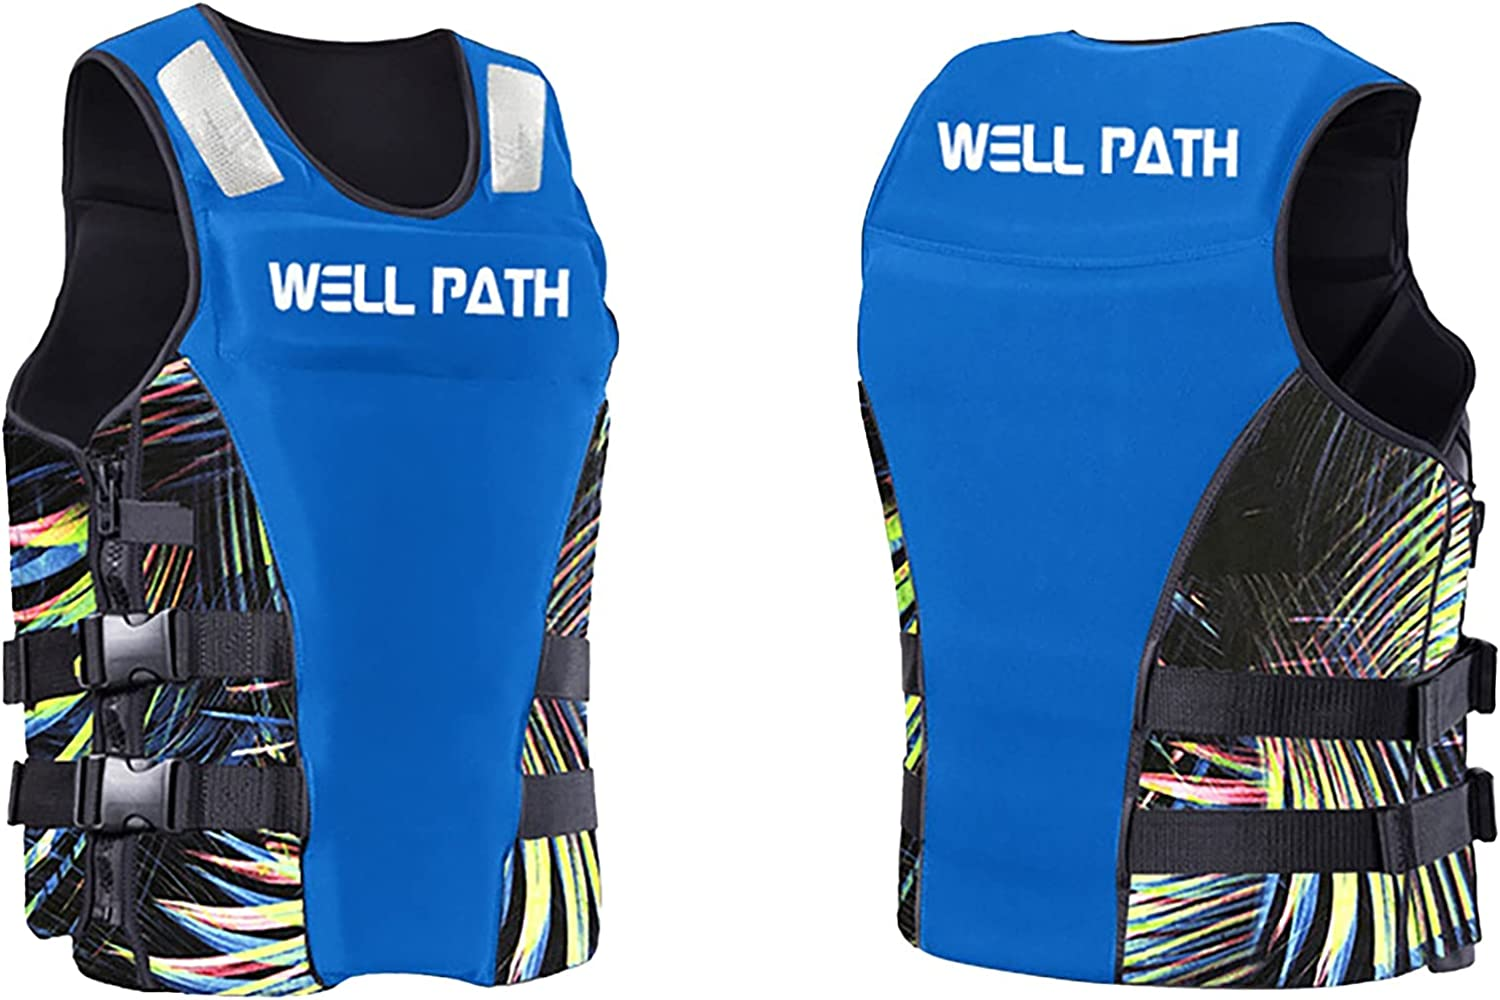 Buoyancy Aid Swim Jackets - Infla Special price Portable Super Special SALE held for Vest Adults